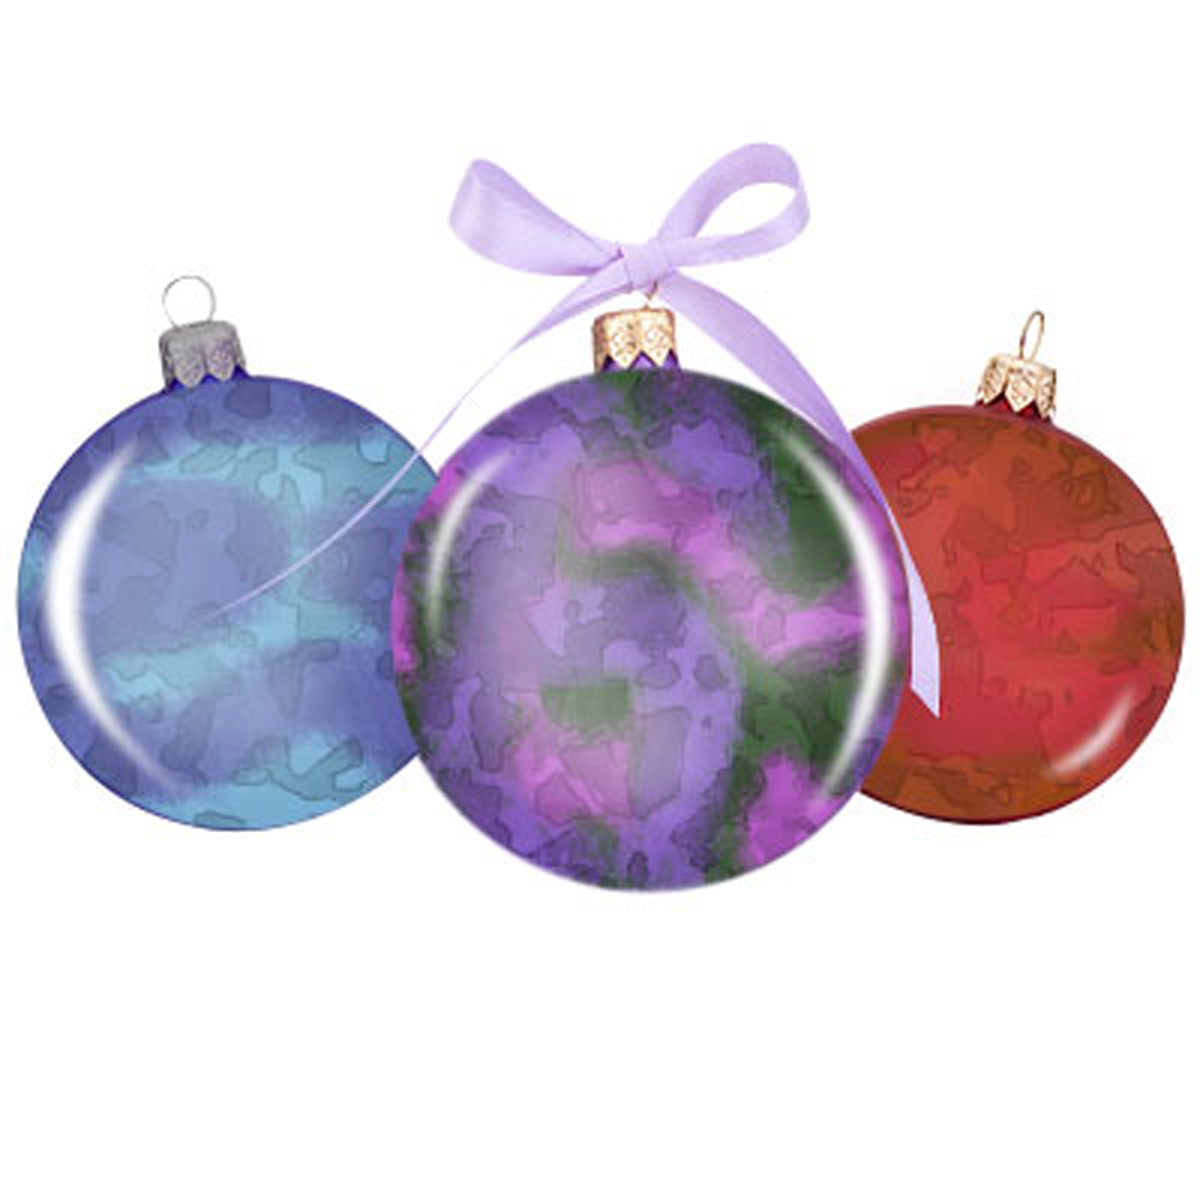 Alcohol Ink Christmas Ornaments.Alcohol Ink Christmas Ornaments Three Sheep